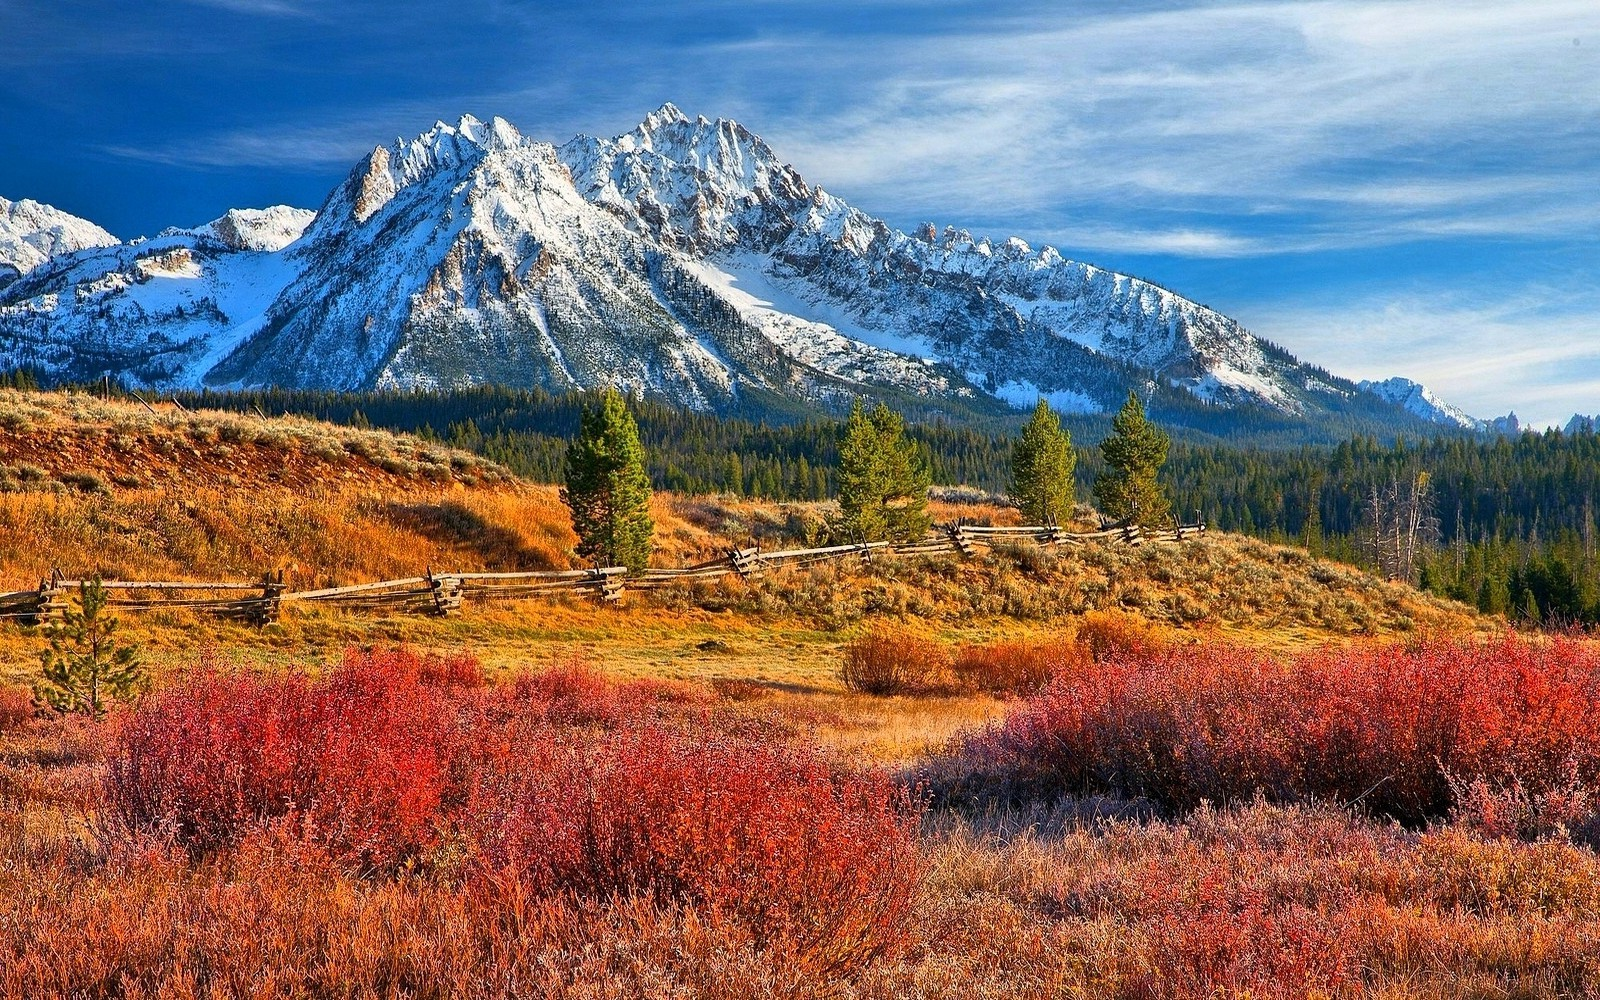 Fall Wallpapers For Desktop Idaho Nature Landscape Snowy Peak Forest Grass Mountain